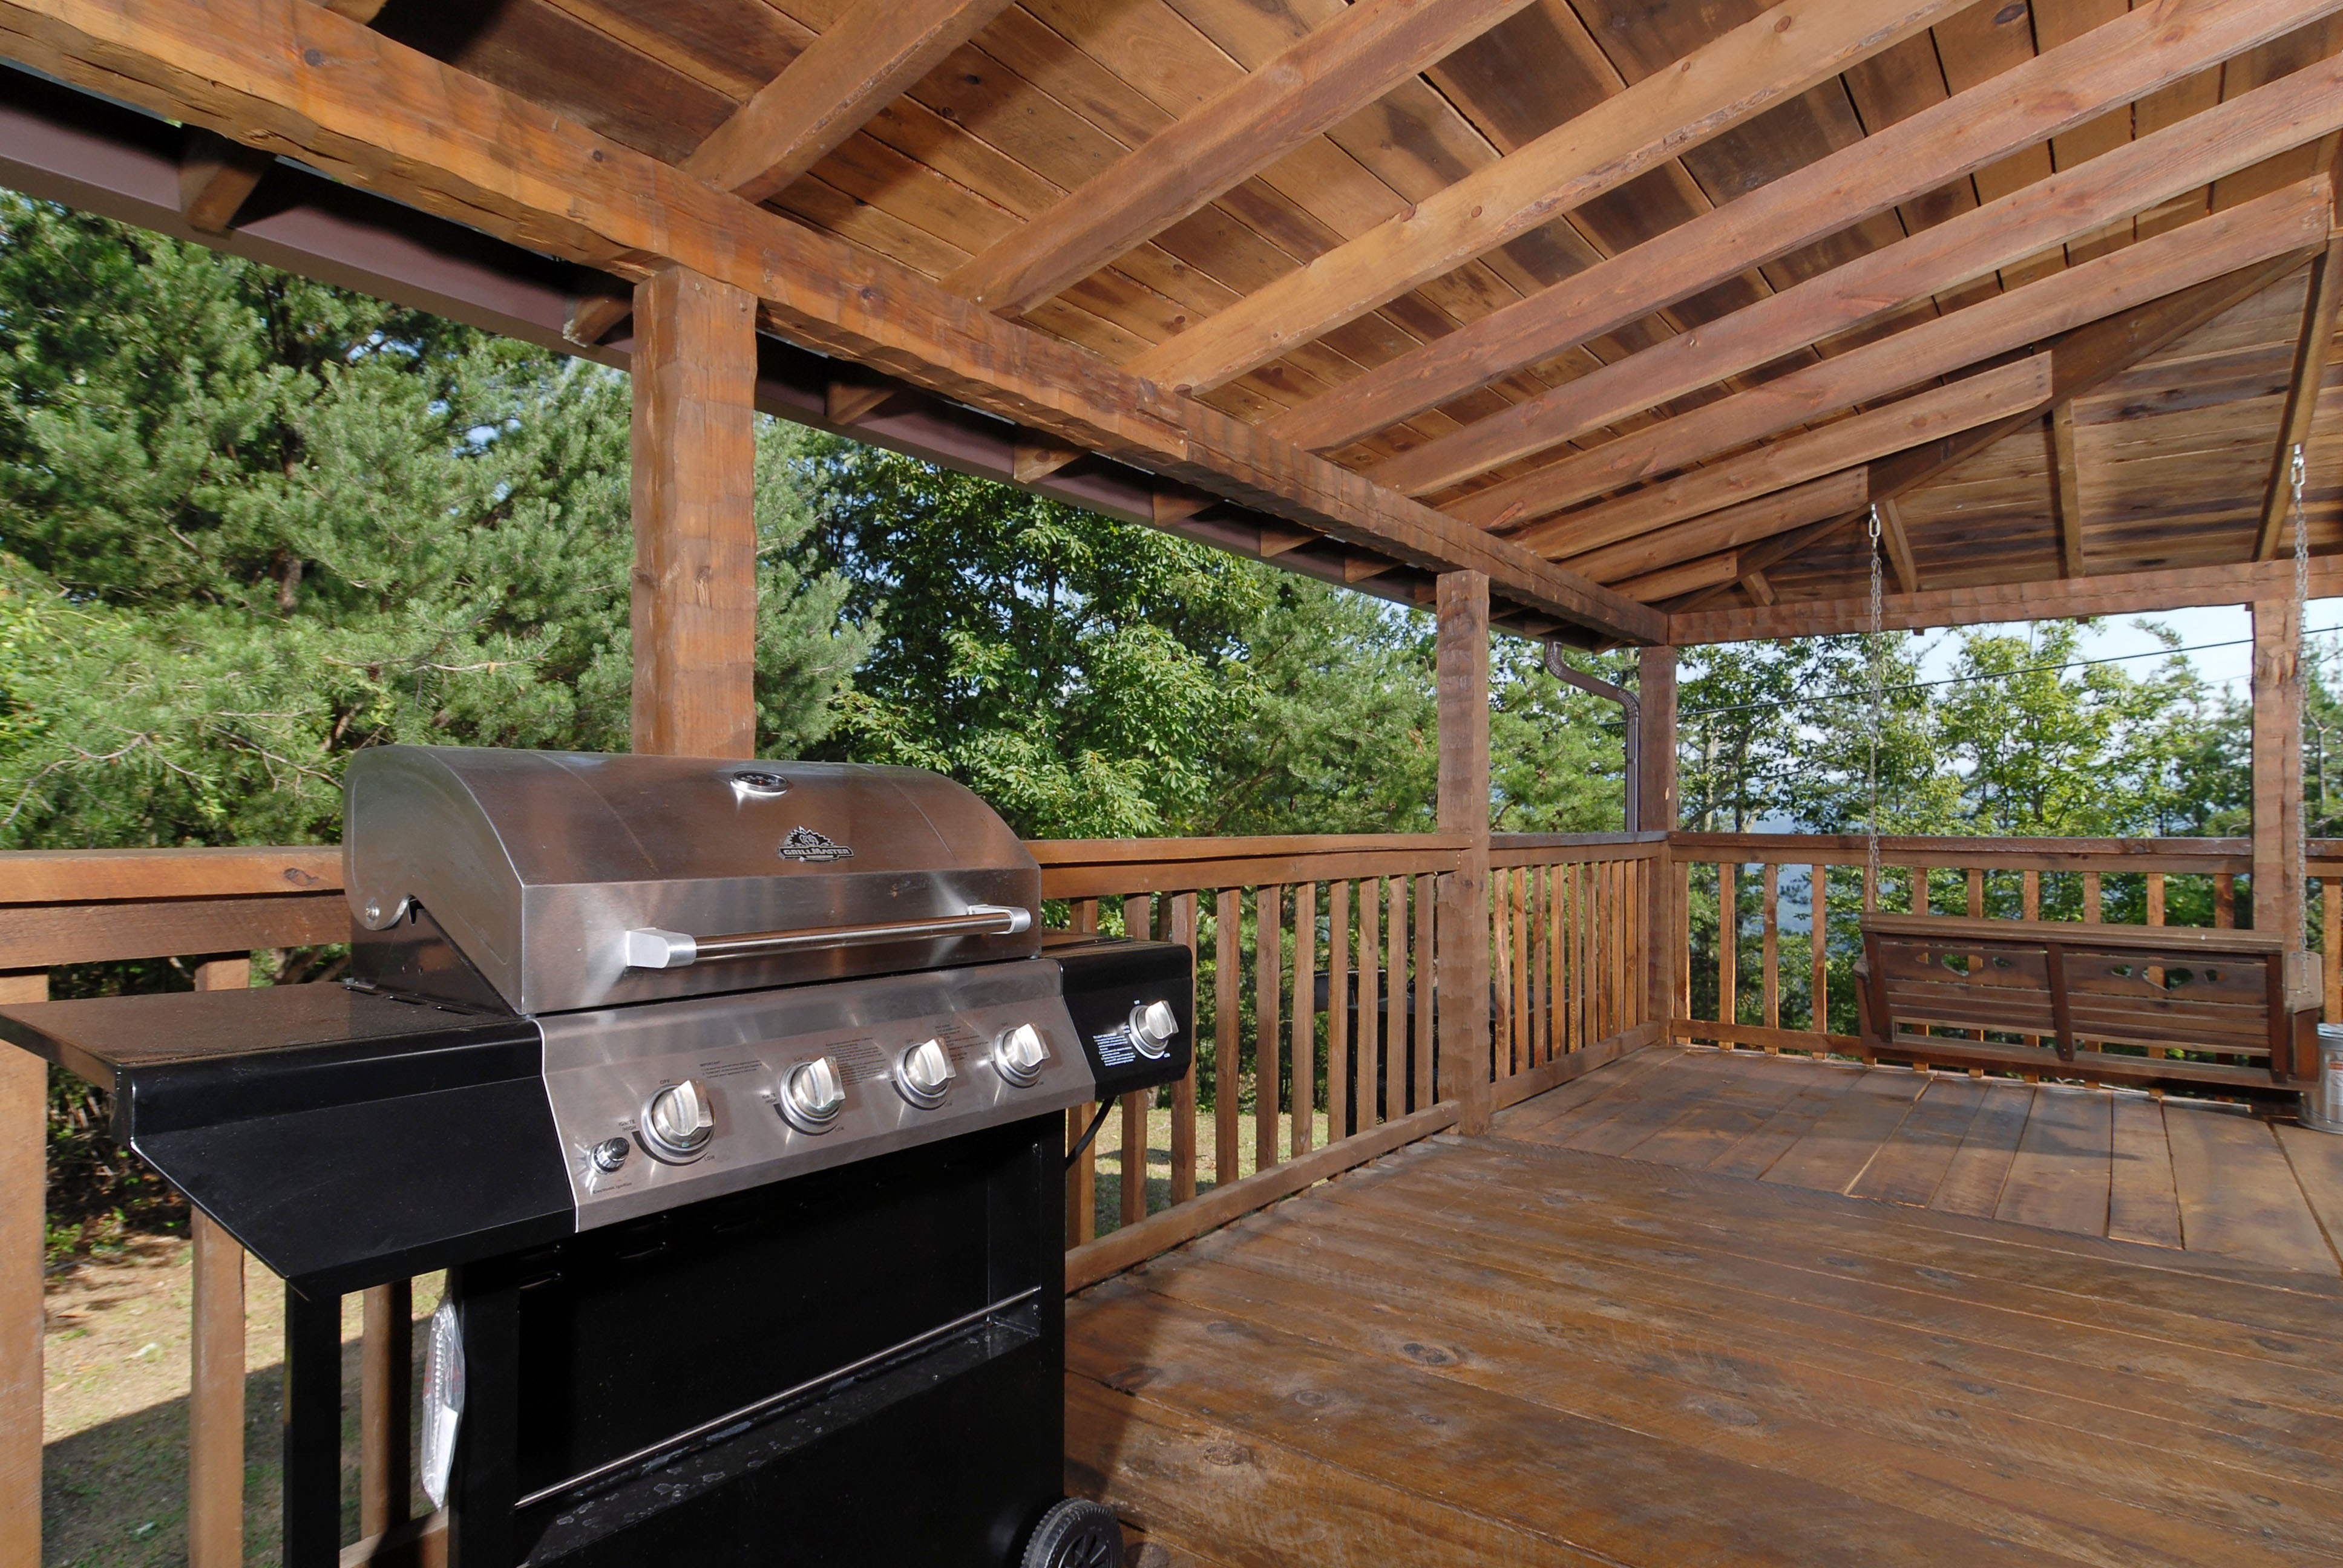 cabin forge three cabins tennessee chalet bedroom pigeon in a luxury mountain view scenic with serenity pigeonforgethreebdrmcabin rental